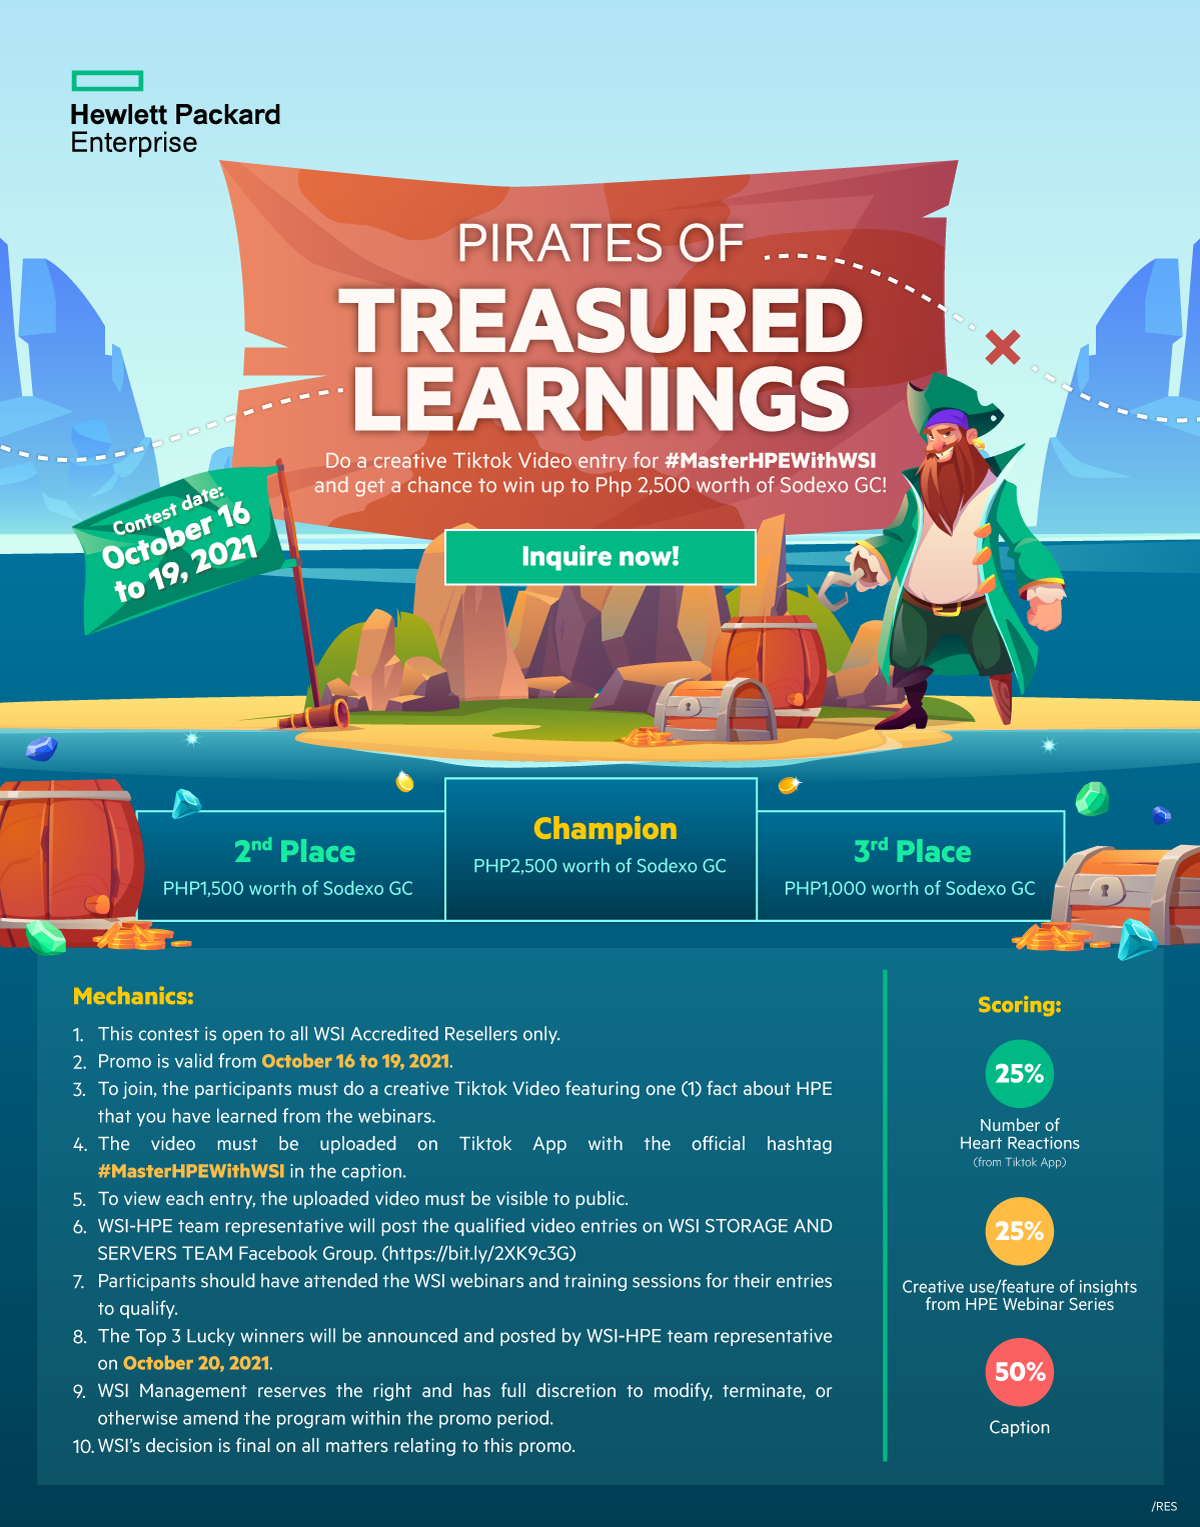 HPE-Pirates of Treasured Learnings Landing Page